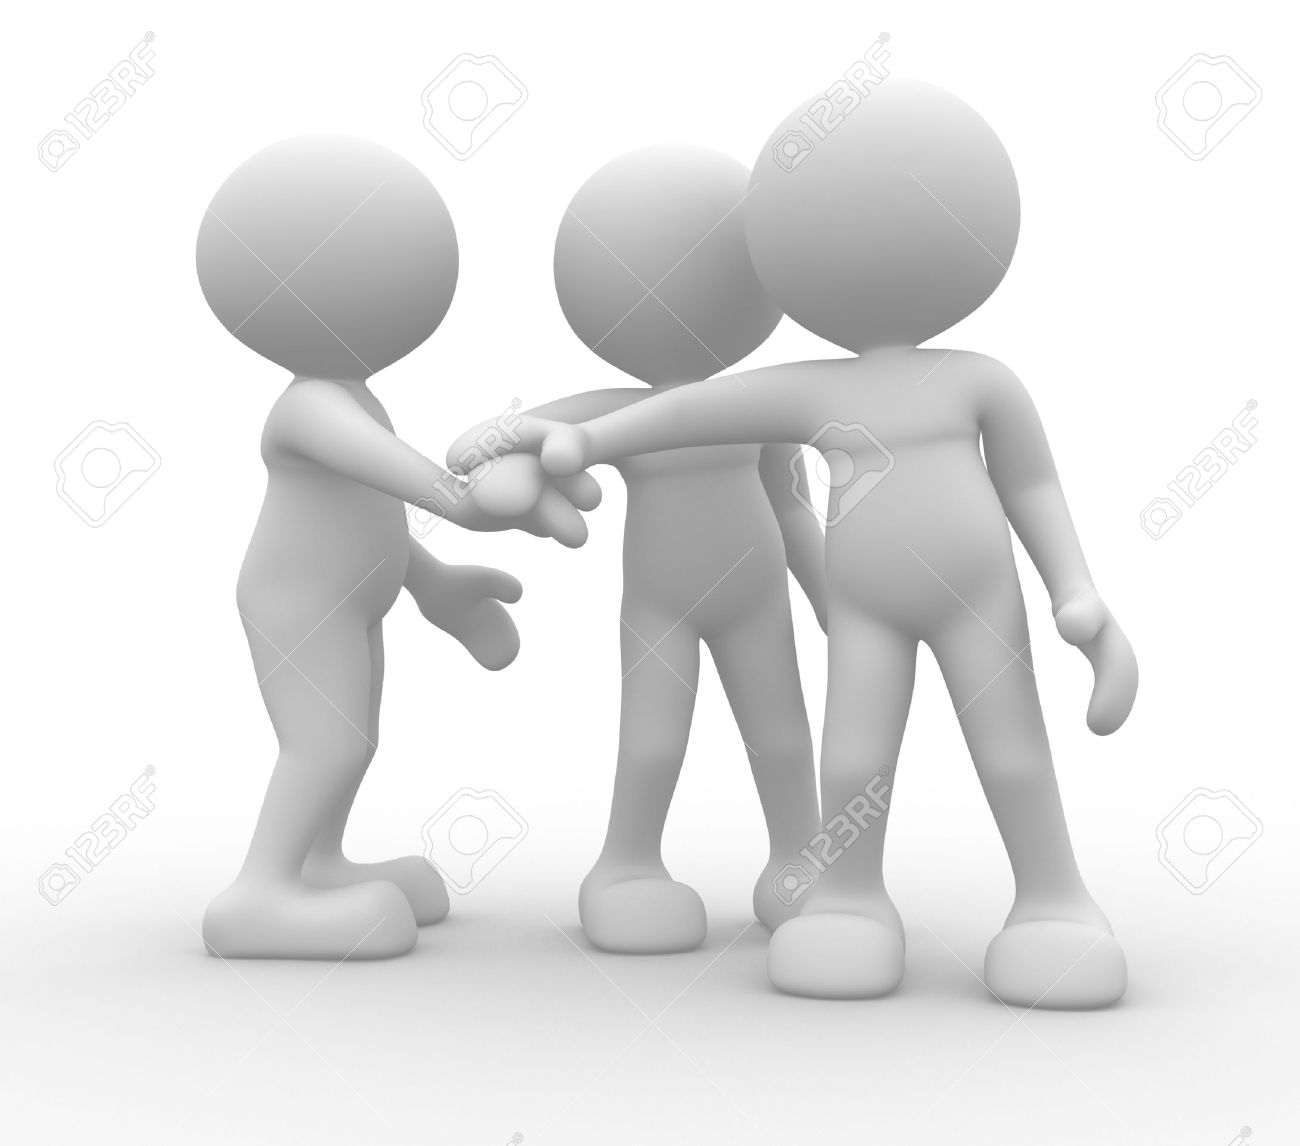 Men holding the word party concept 3d illustration stock photo - Meeting 3d 3d People Men Person Together Business Team Joining Hands Concept